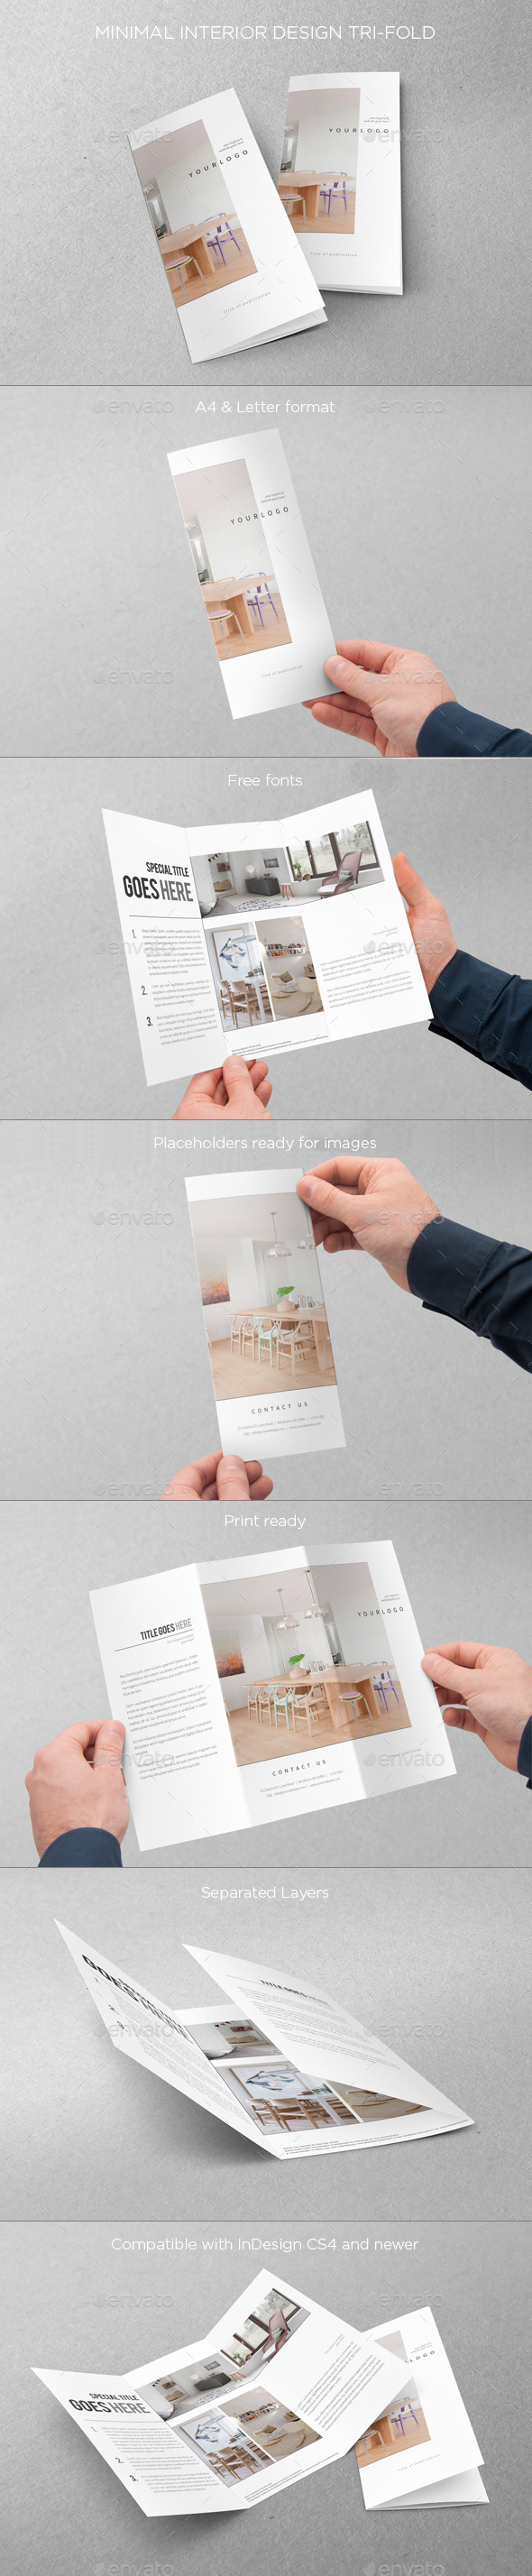 GraphicRiver Minimal Interior Design Trifold 8989296